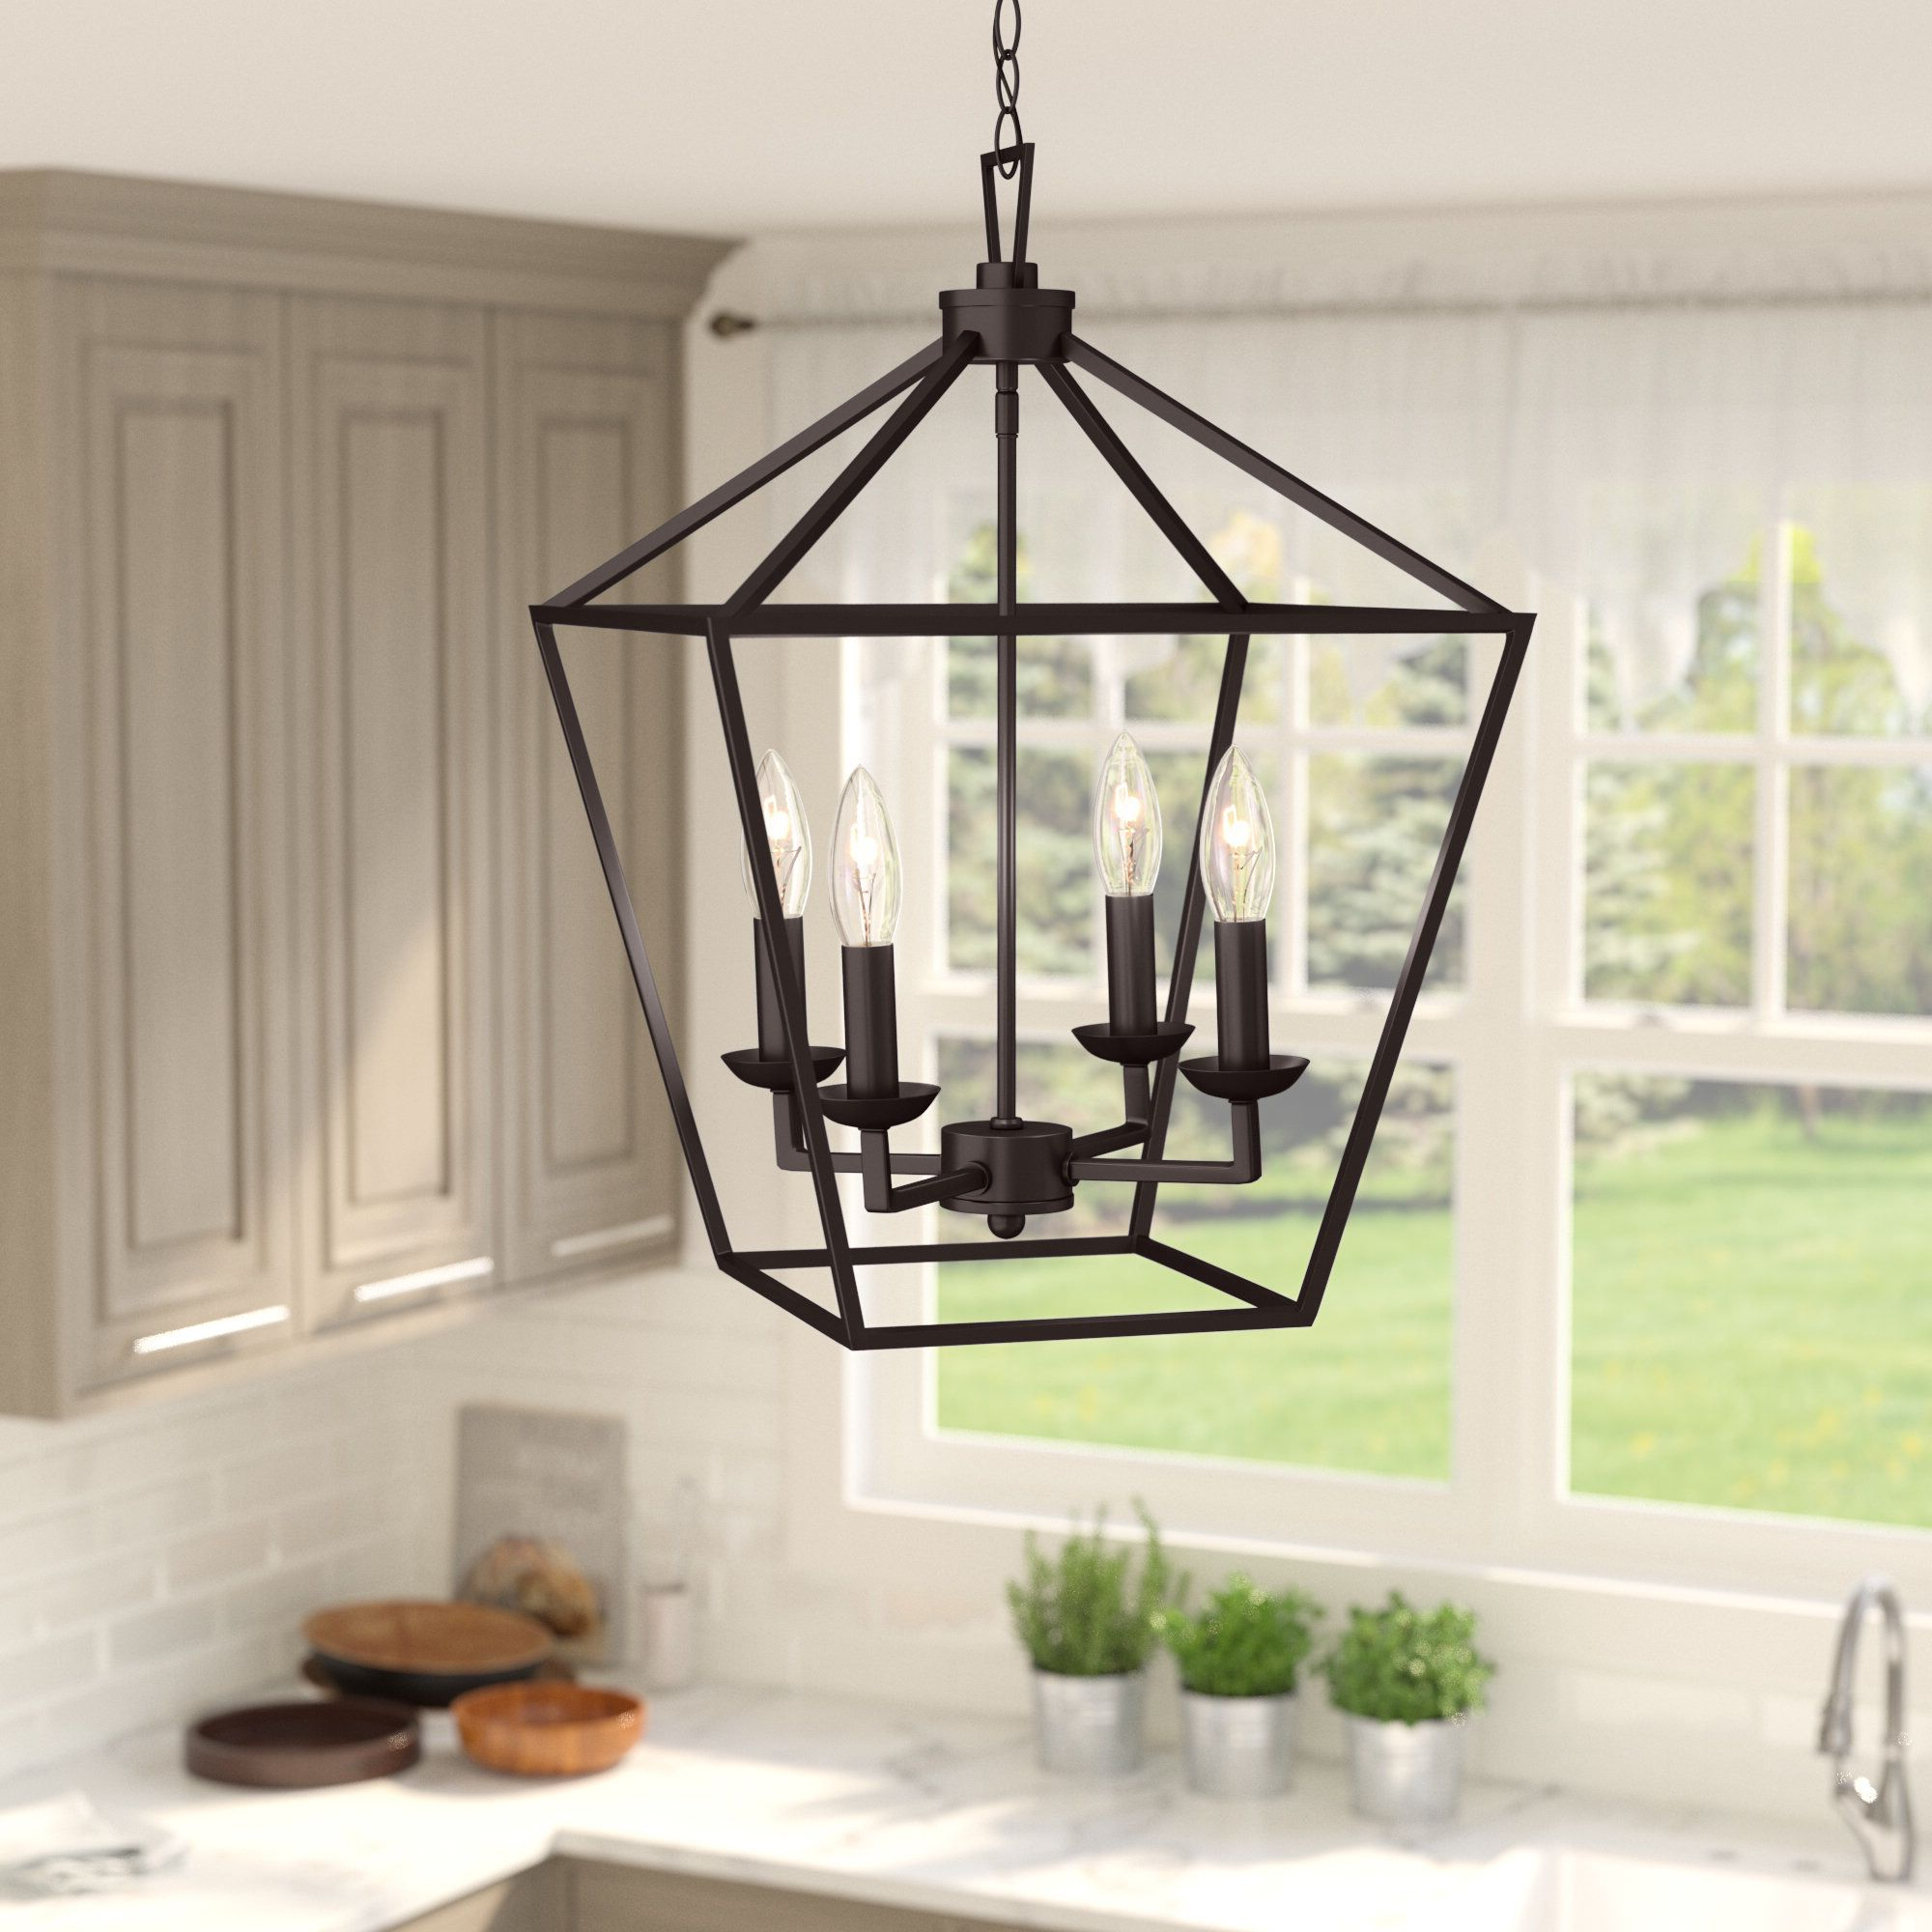 Gabriella 3 Light Lantern Chandeliers Regarding Newest Carmen 4 Light Lantern Pendant In  (View 11 of 25)